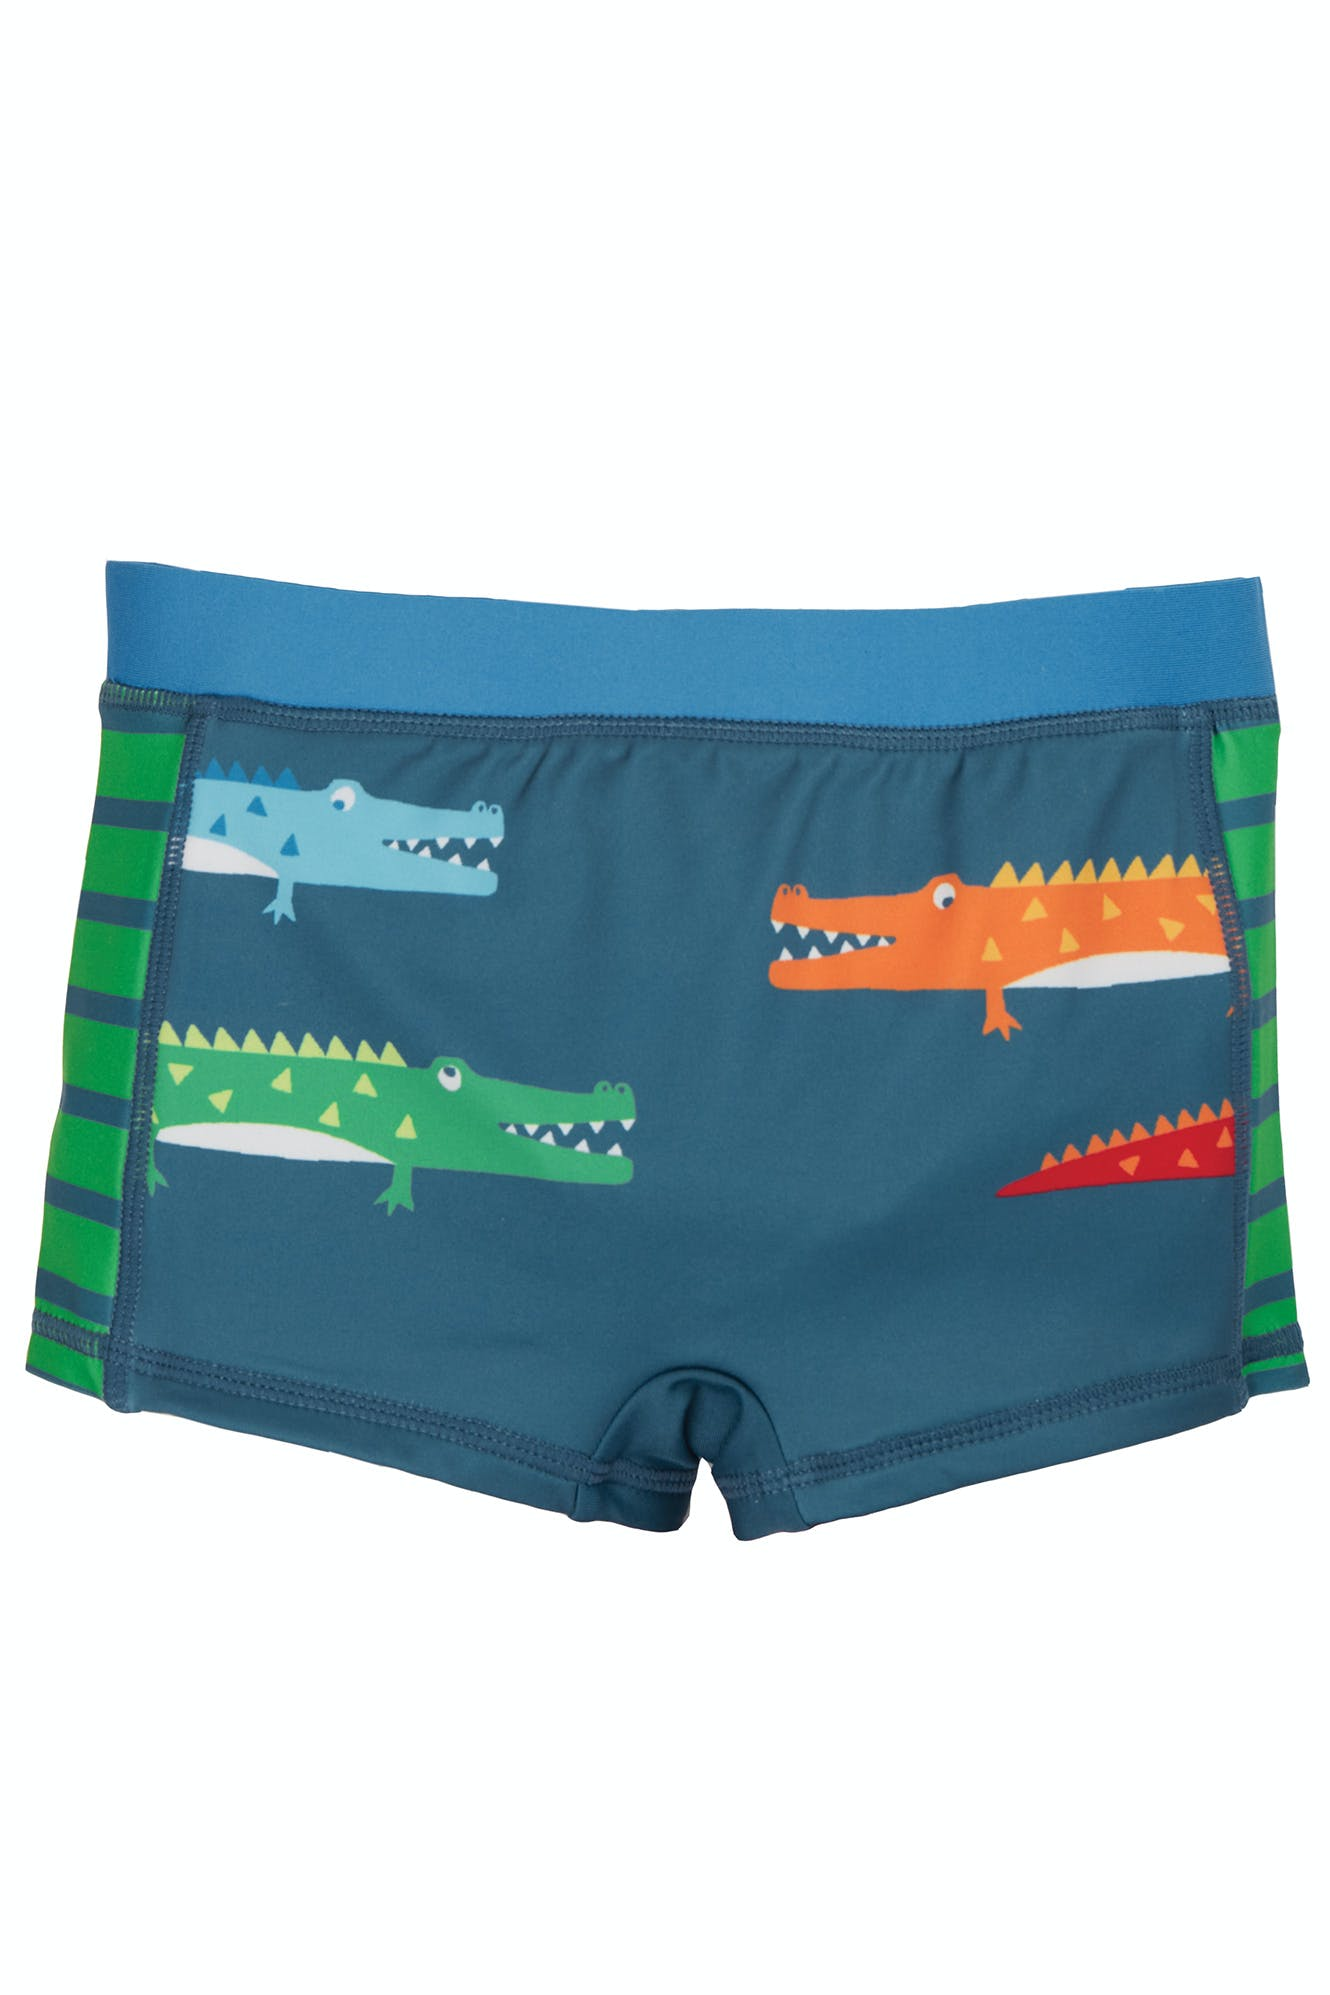 Click to view product details and reviews for Tidal Wave Trunks.